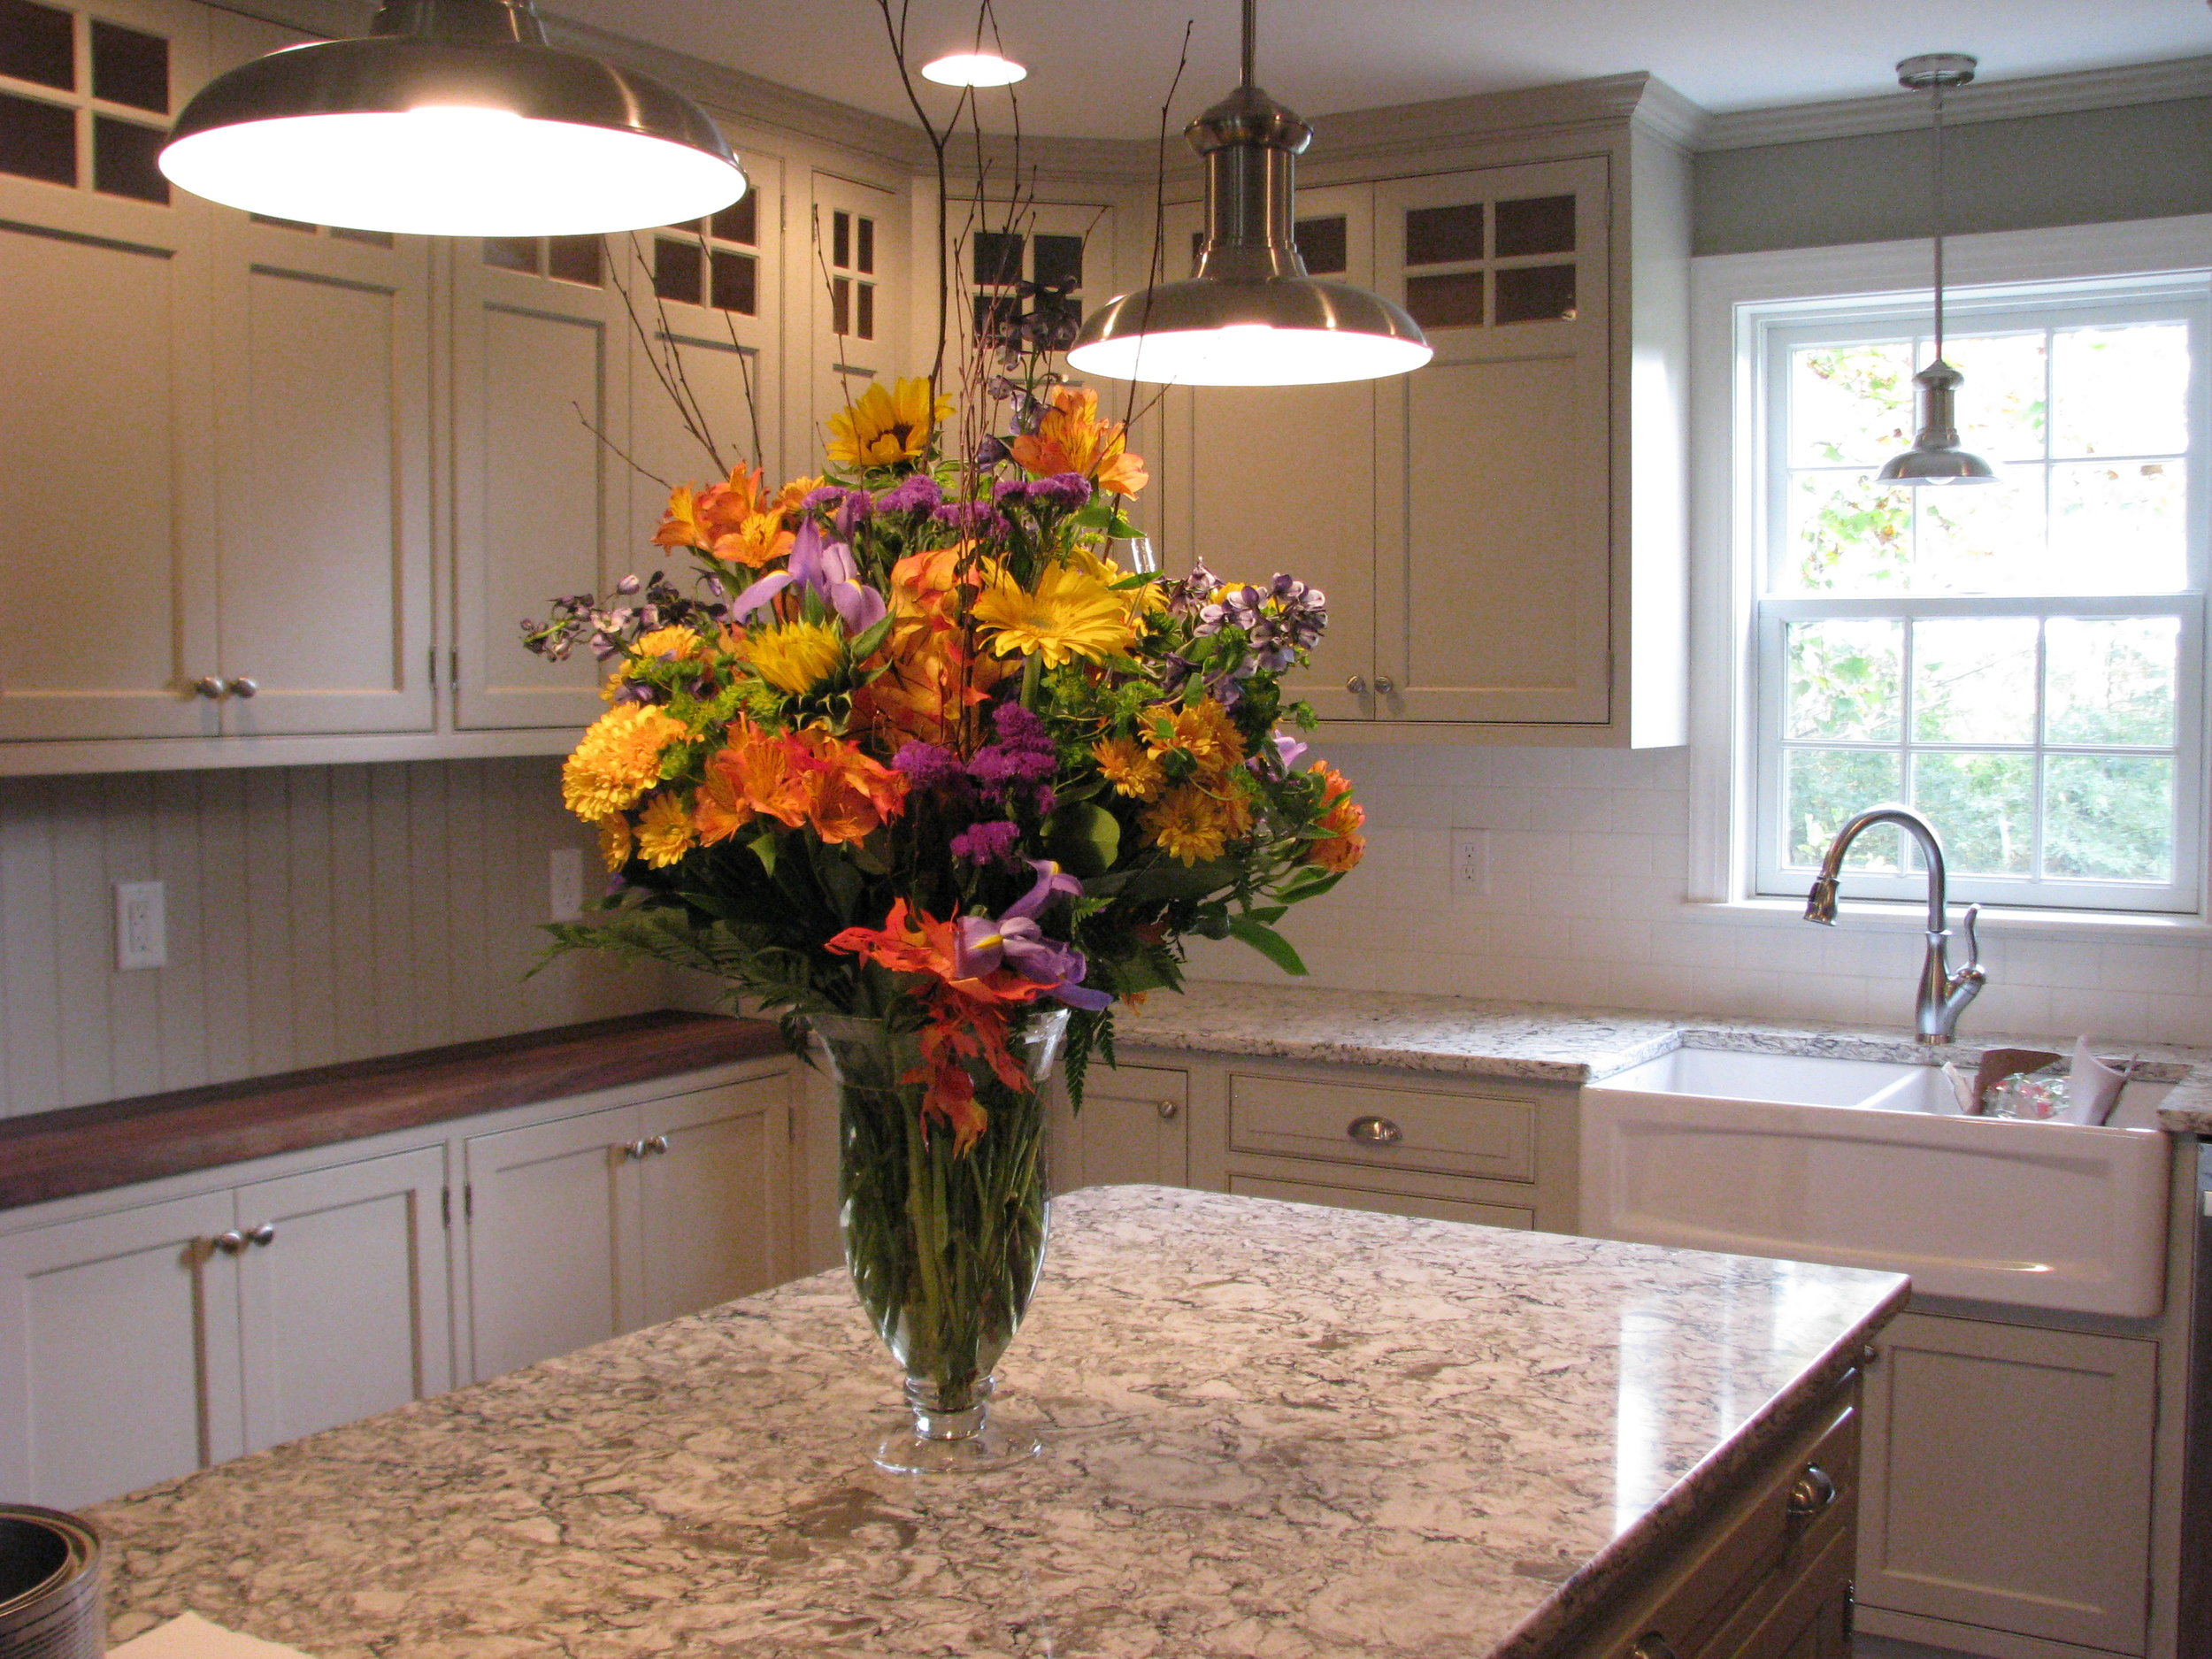 REMODELING & REPAIRS - We're here for all of your remodeling and repair needs. We take special care bringing your ideas to life by designing your home remodeling needs with expertise and creating the project of your dreams.